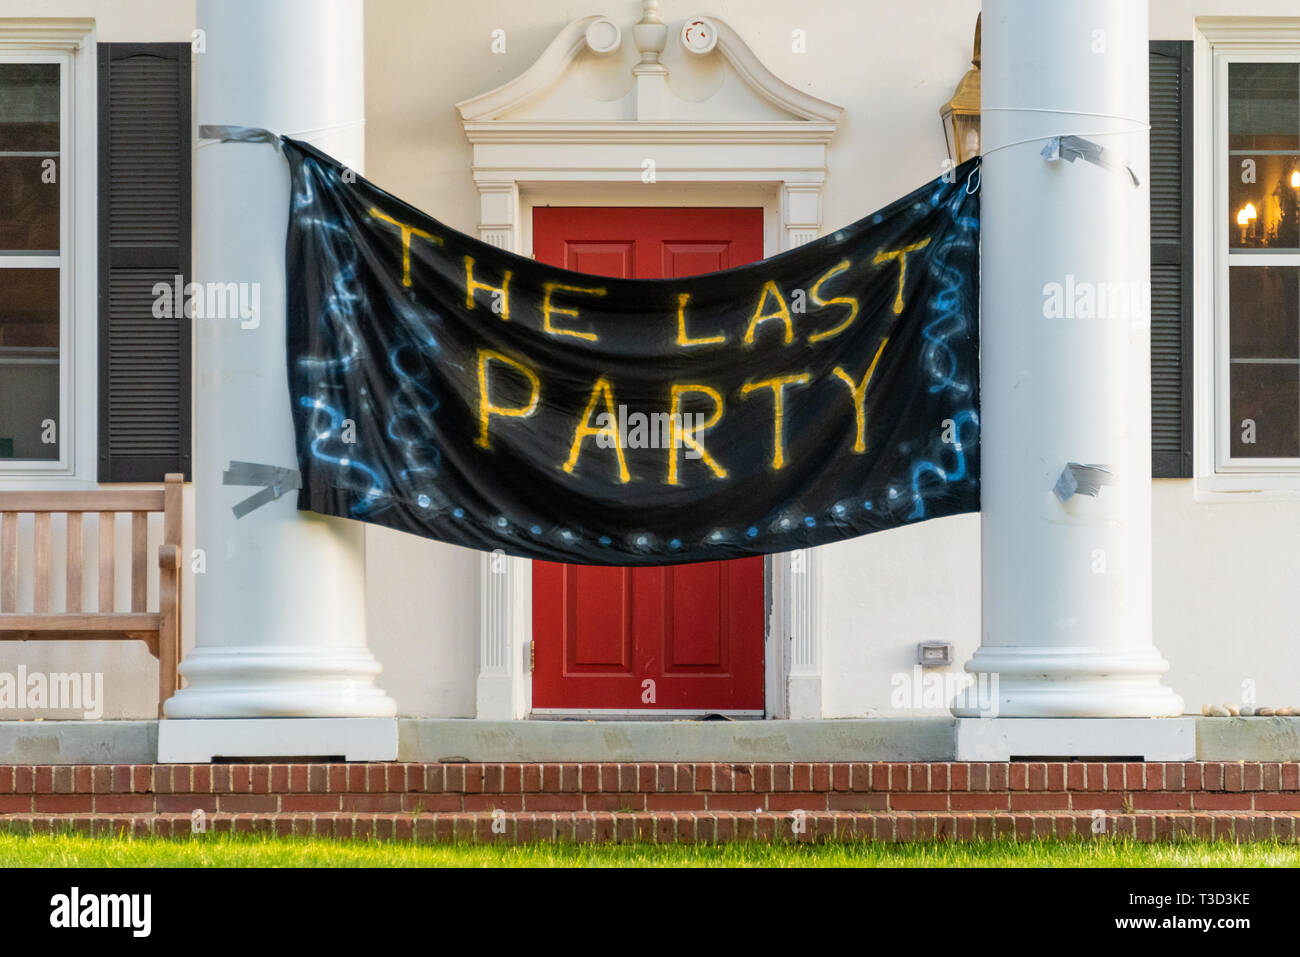 'The Last Party' banner hangs between the front columns of a fraternity house on the campus of Emory University shortly before college graduation. - Stock Image